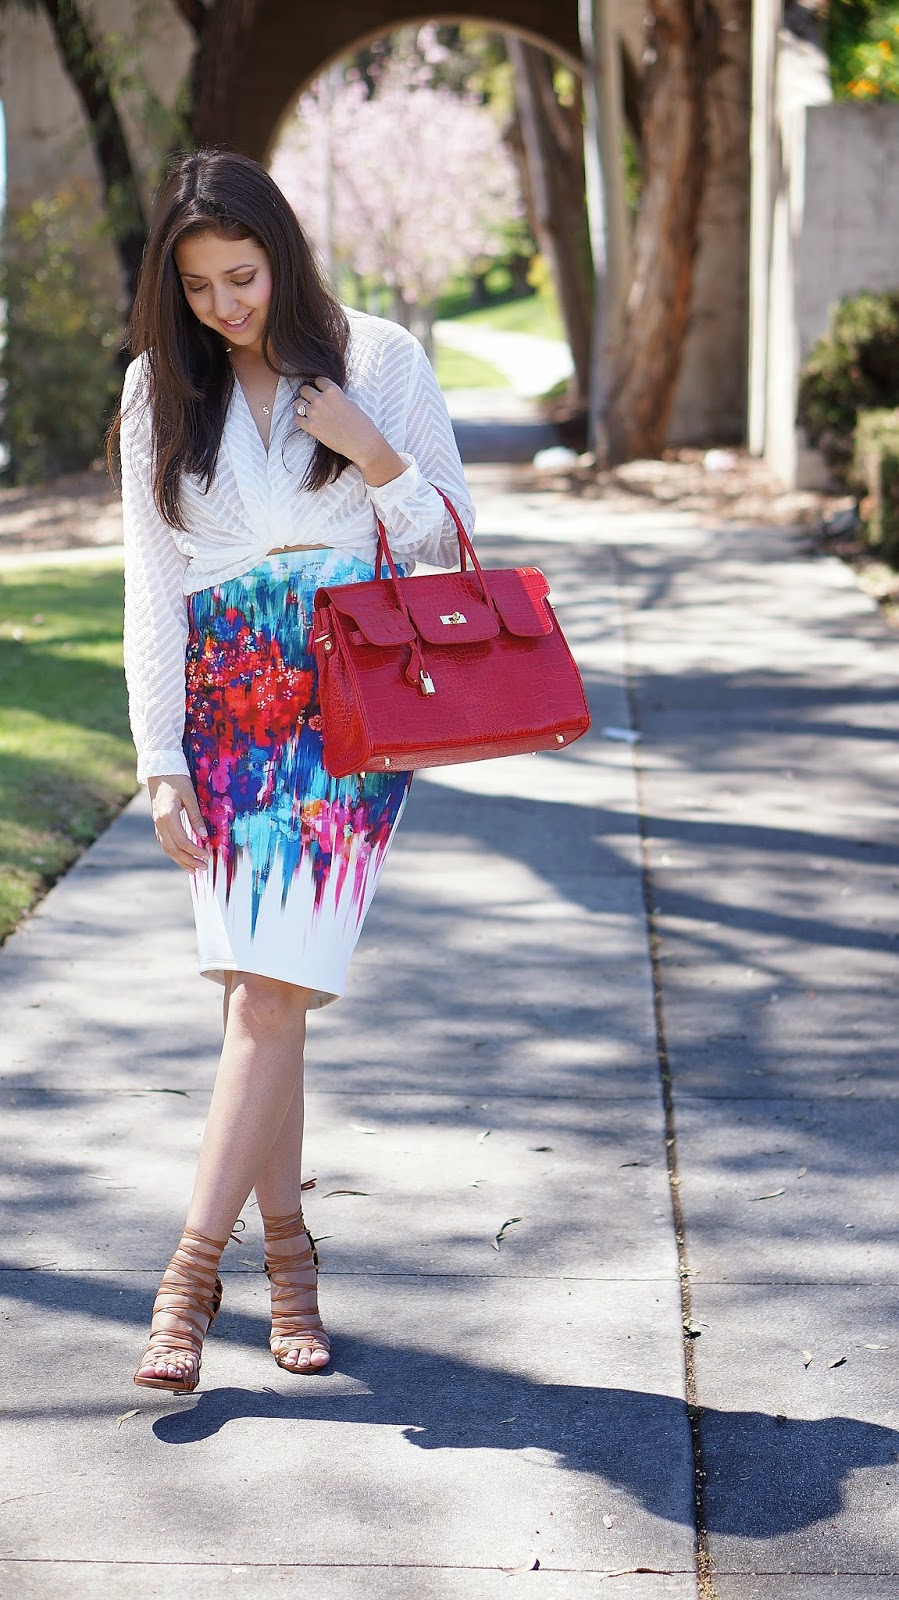 JCPenney skirt, Bisous Bisou Twist Blouse, Bisou Bisou Pencil Skirt, Bertie Bag, Vanilla Paris Bertie Bag Review, Hermes Inspired Bag, Shoemint Strappy Heels, Shoemint Marcelle Hee